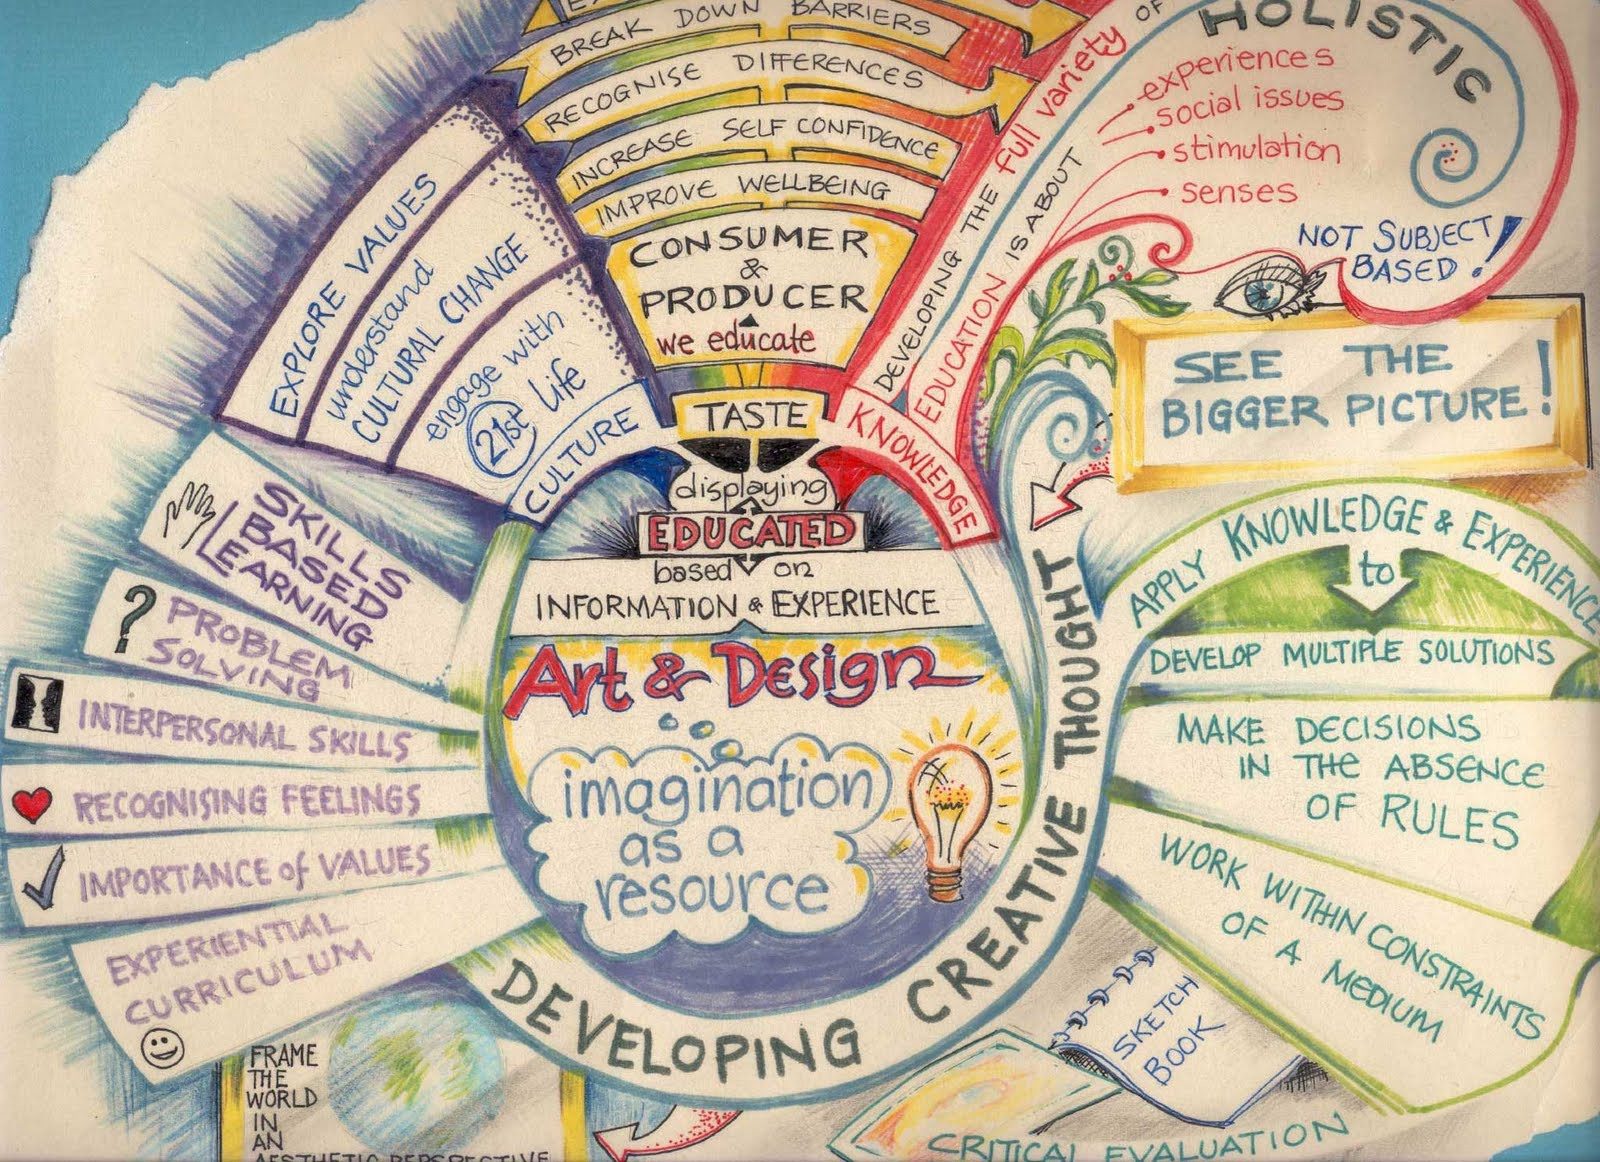 these are the rules of mind mapping tony buzan s rules for mind mapping 1 start in the centre with an image of the topic using at least 3 colours